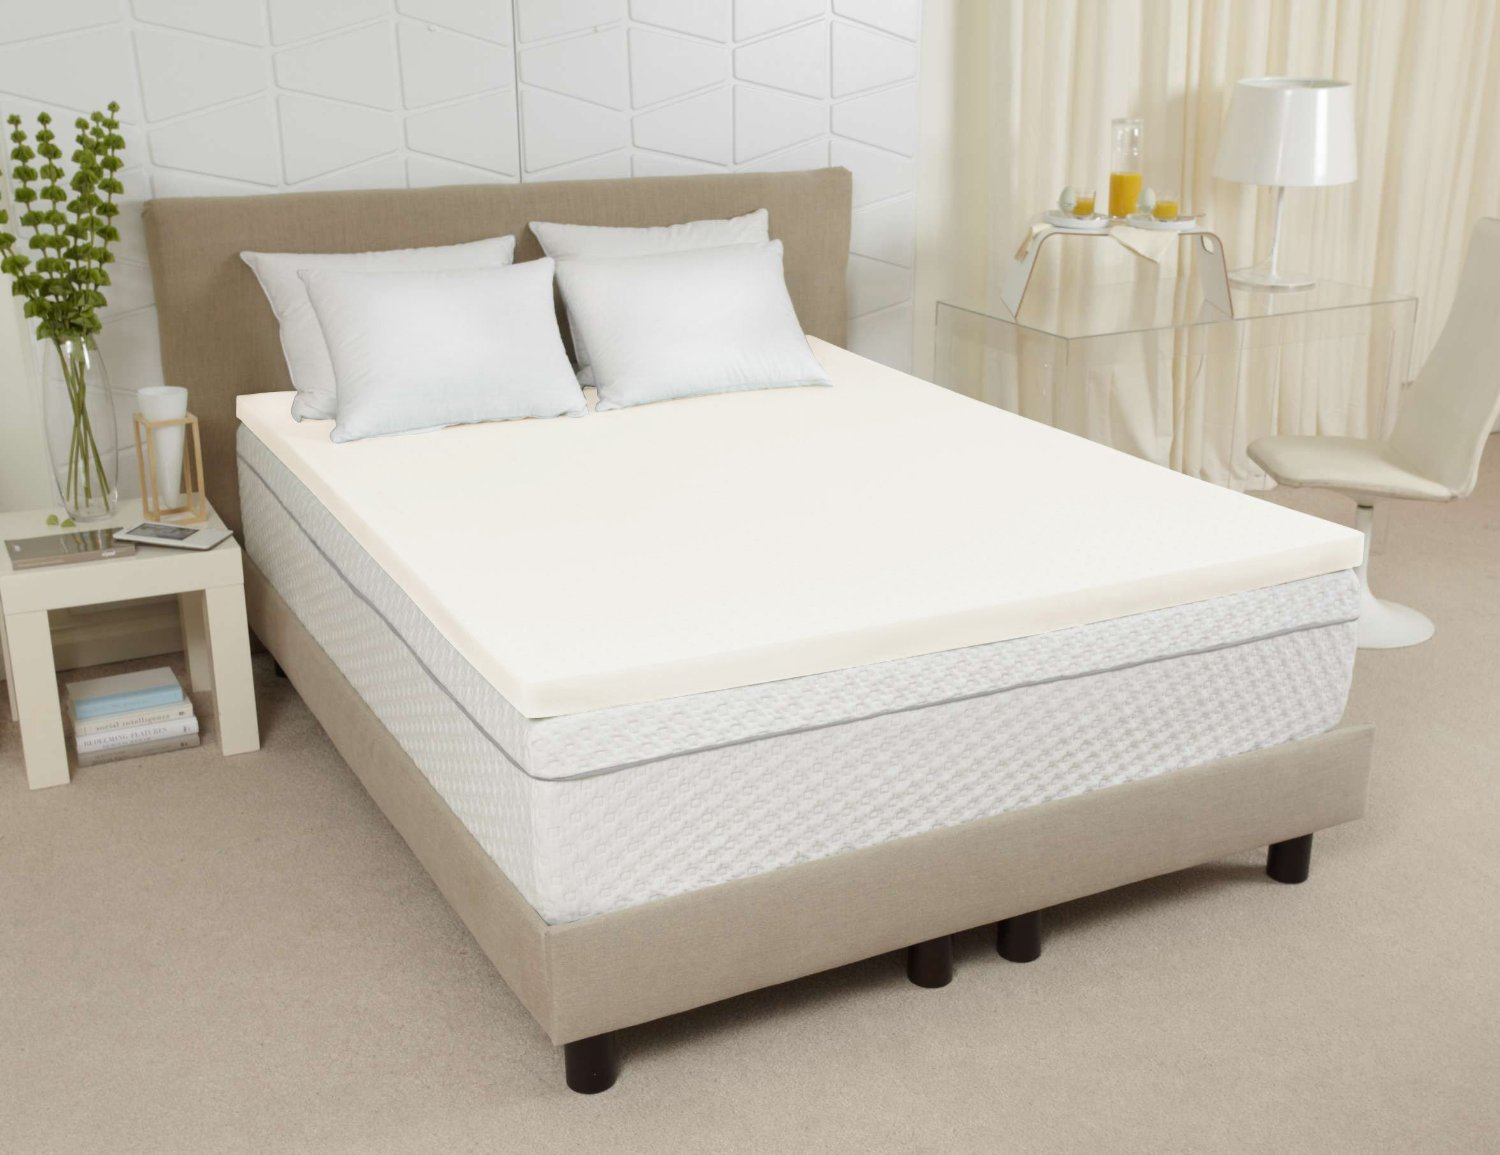 Modern King Size Memory Foam Mattress